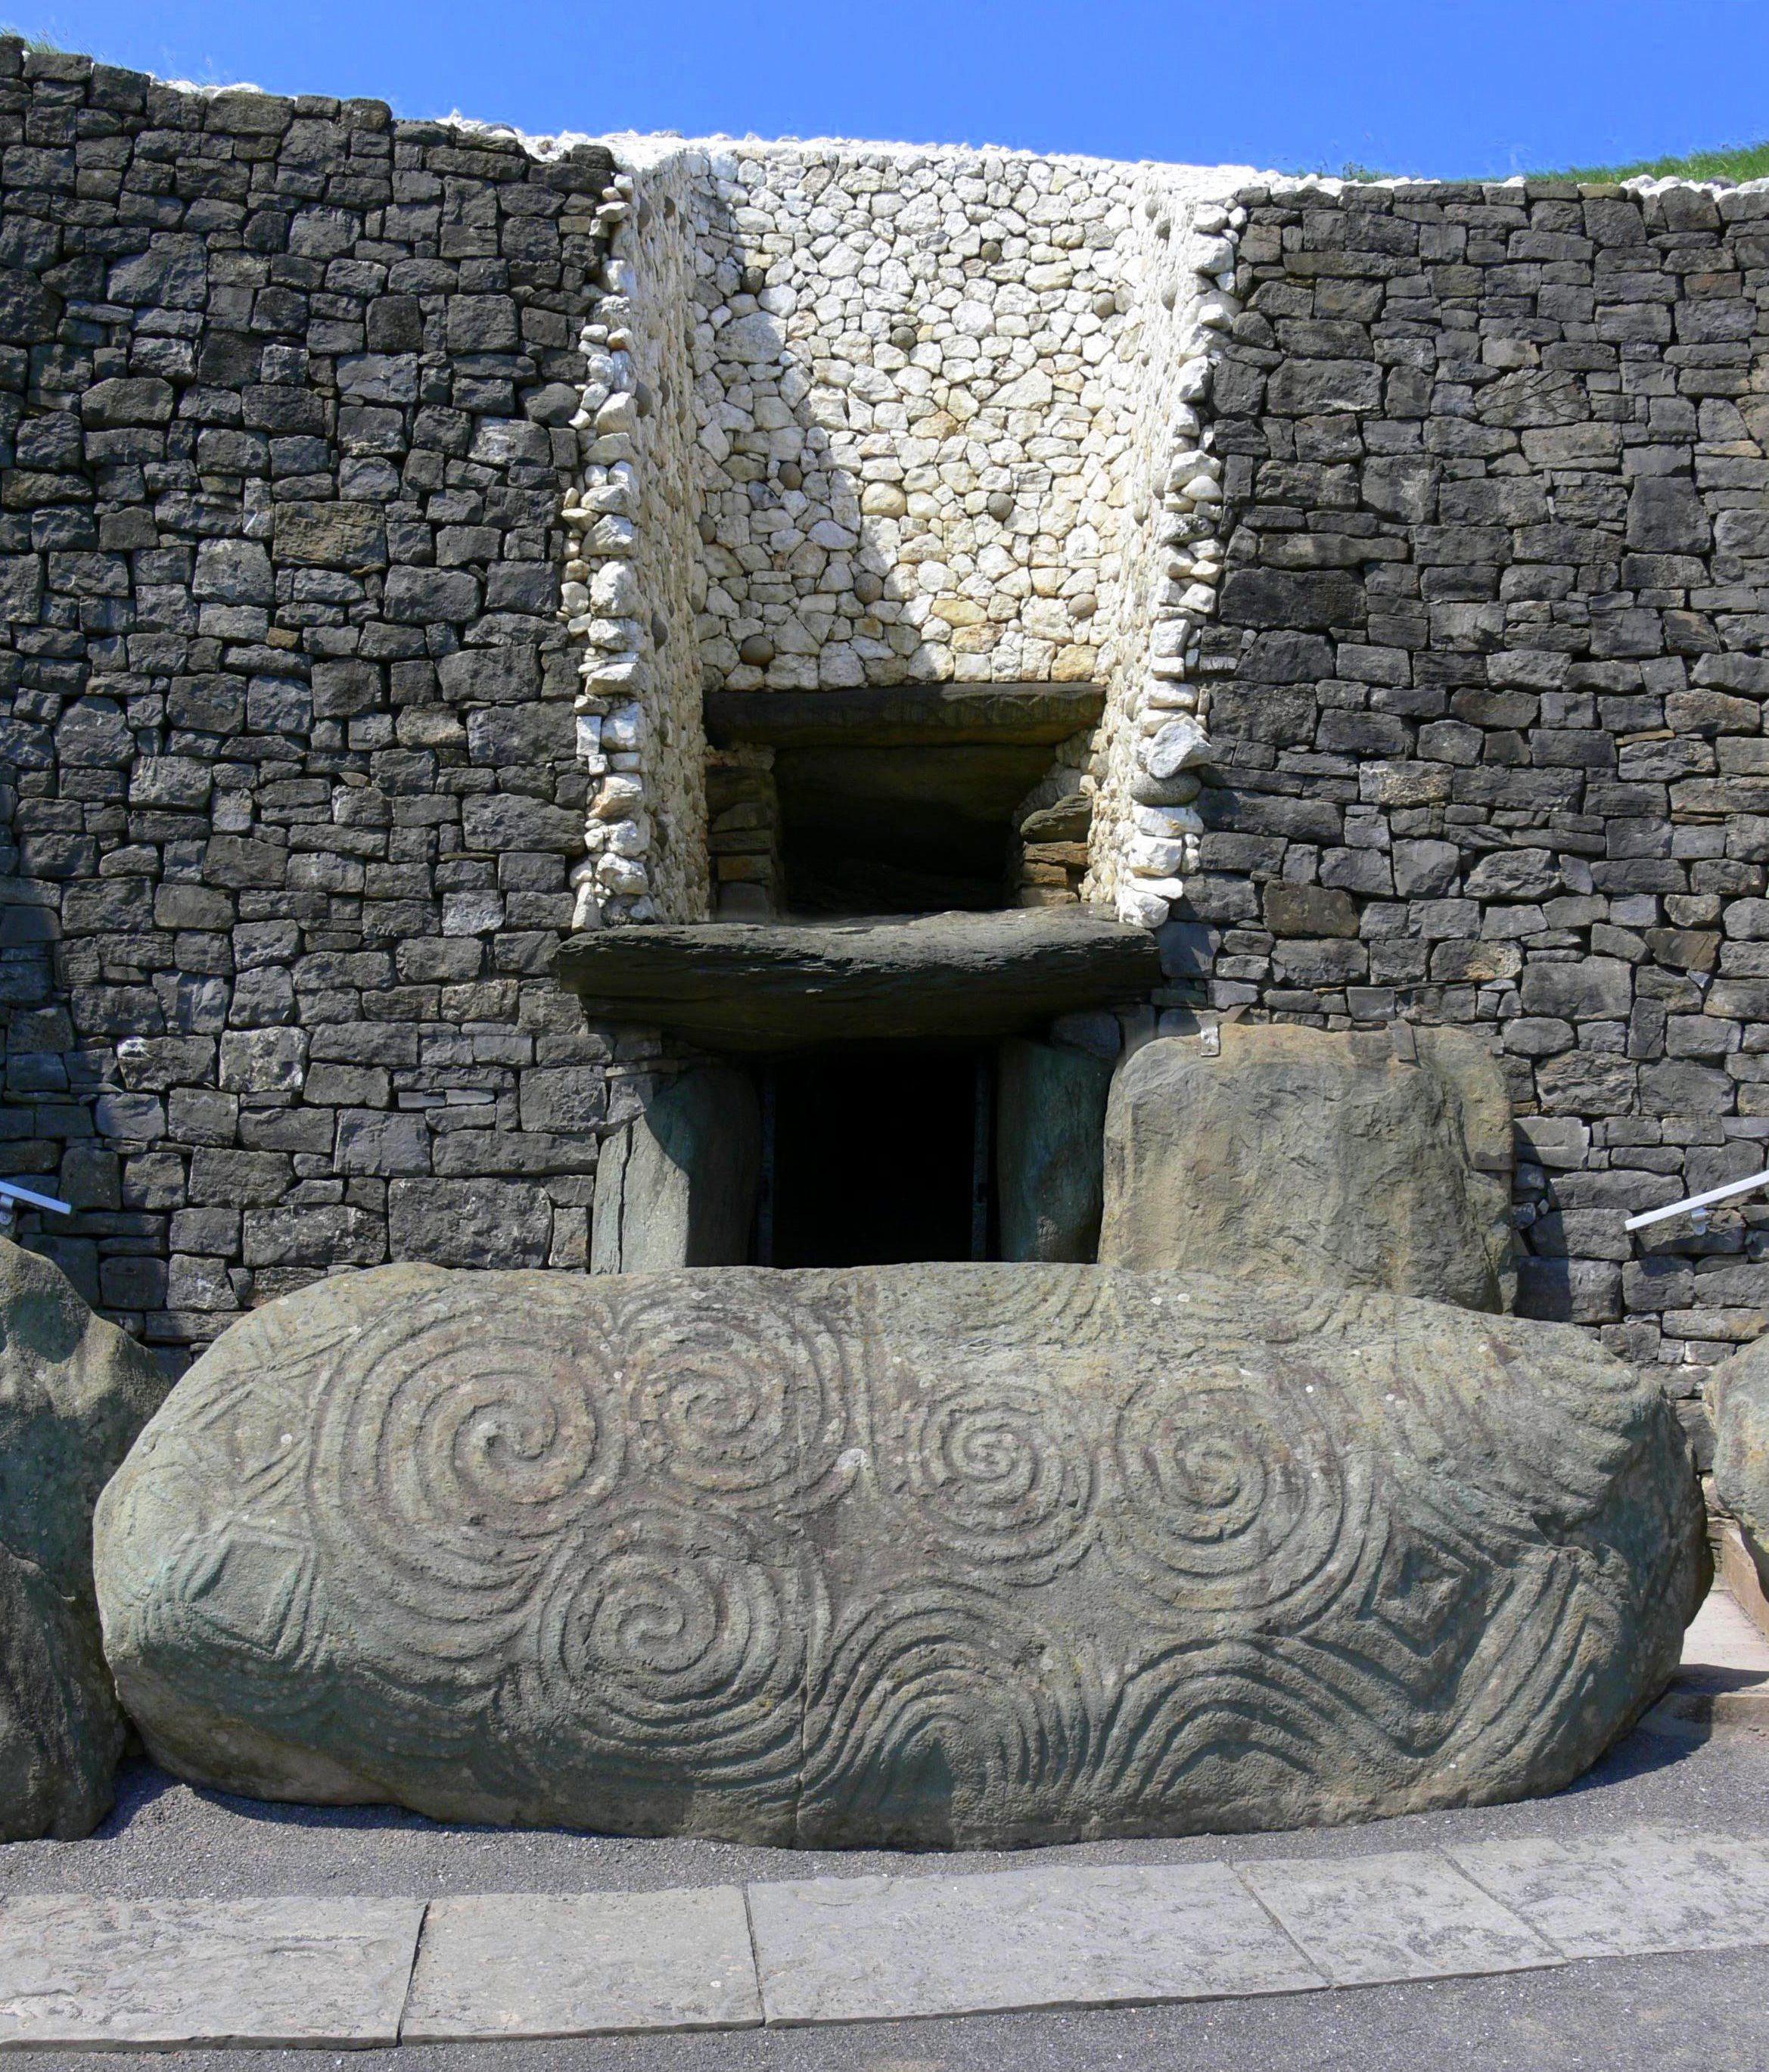 Newgrange, County Meath, Ireland. This is a Neolithic site